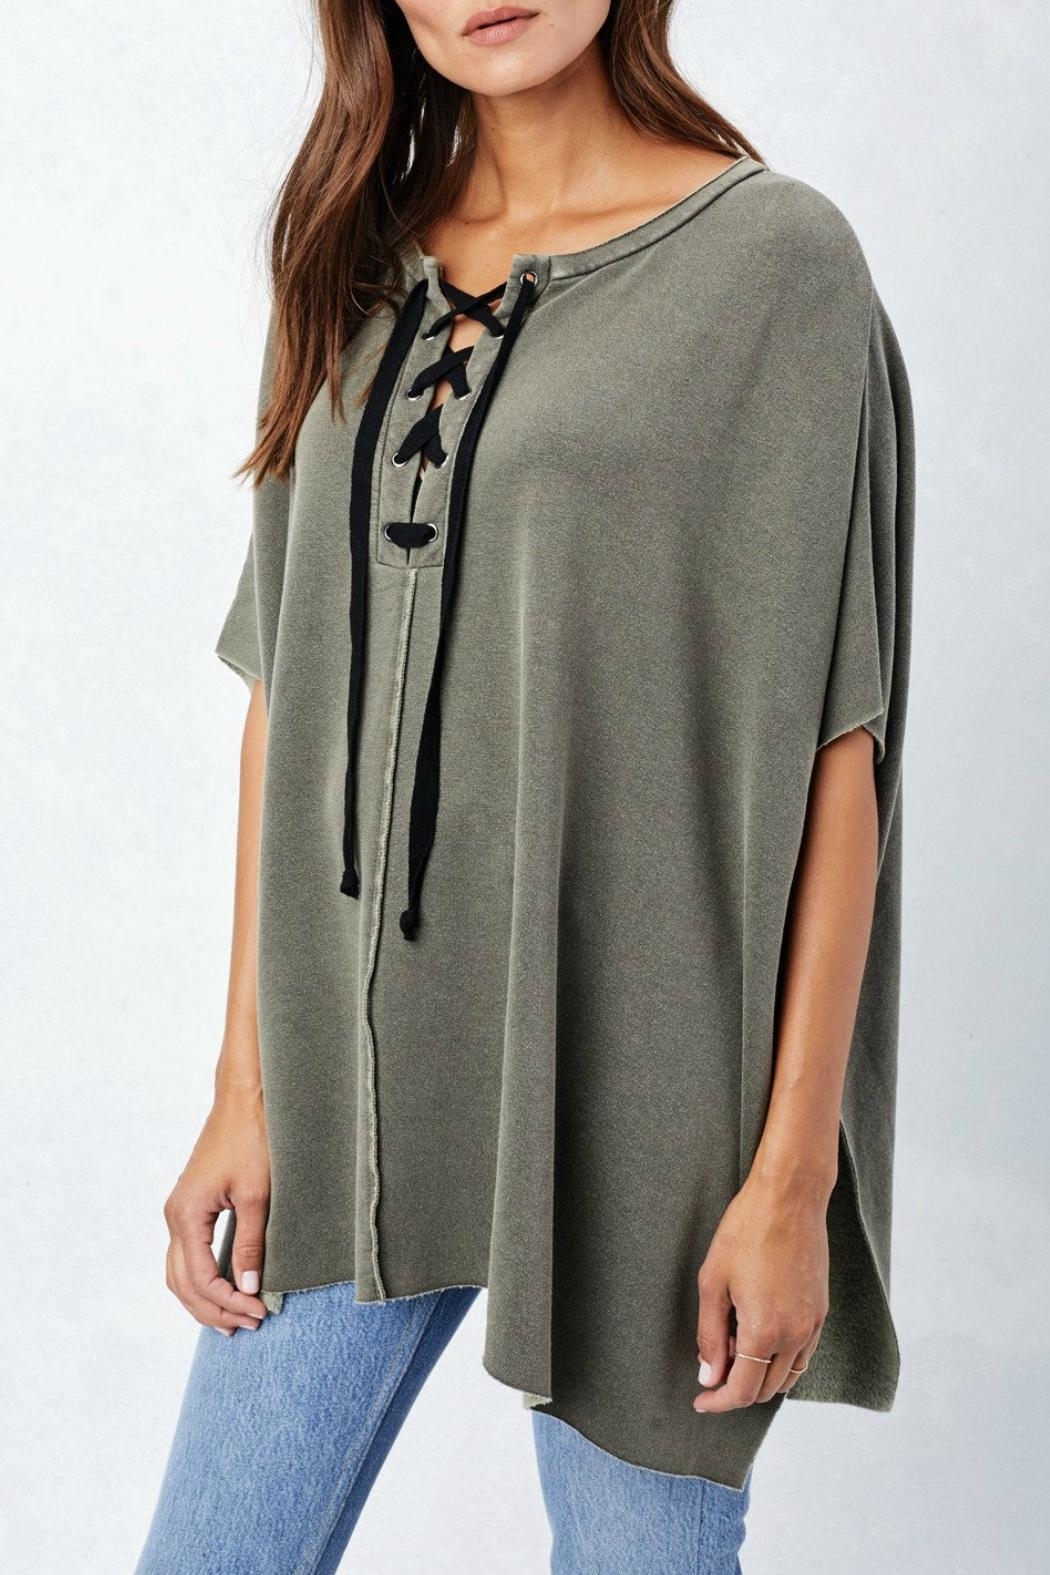 Lovestitch Lace Up Poncho - Main Image